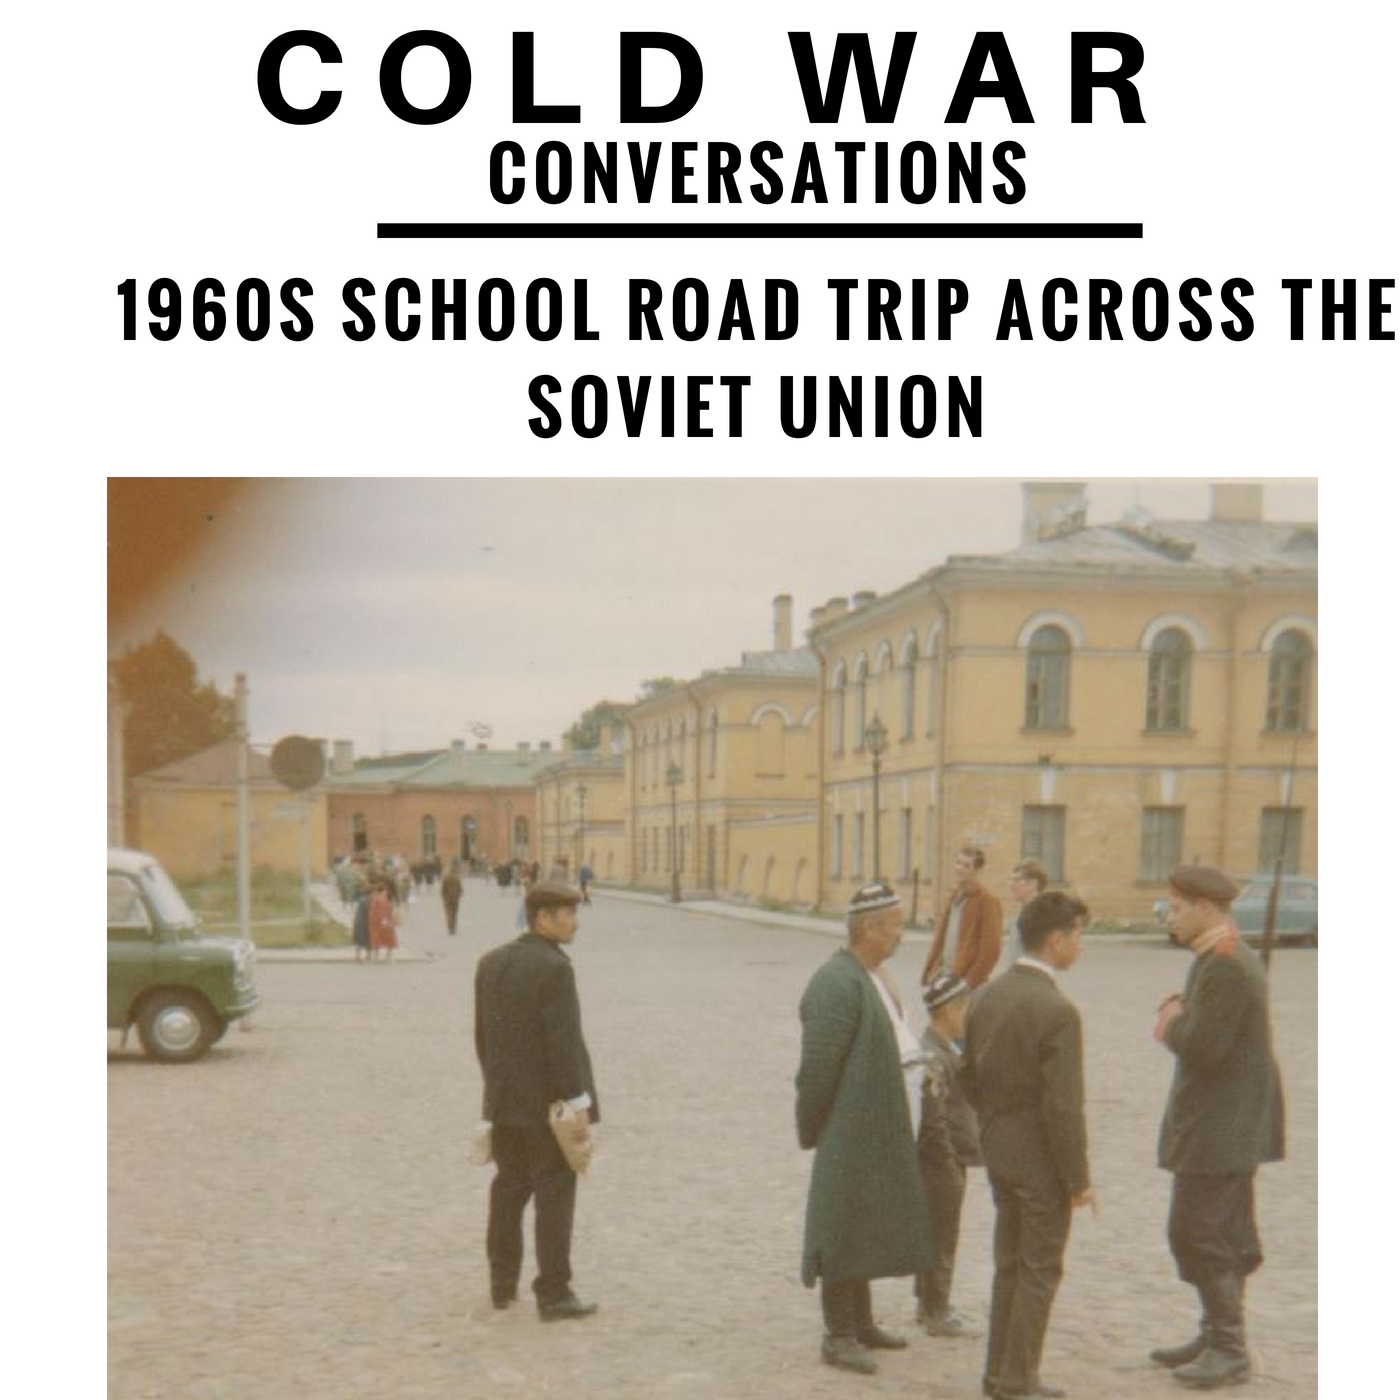 USSR School trip album